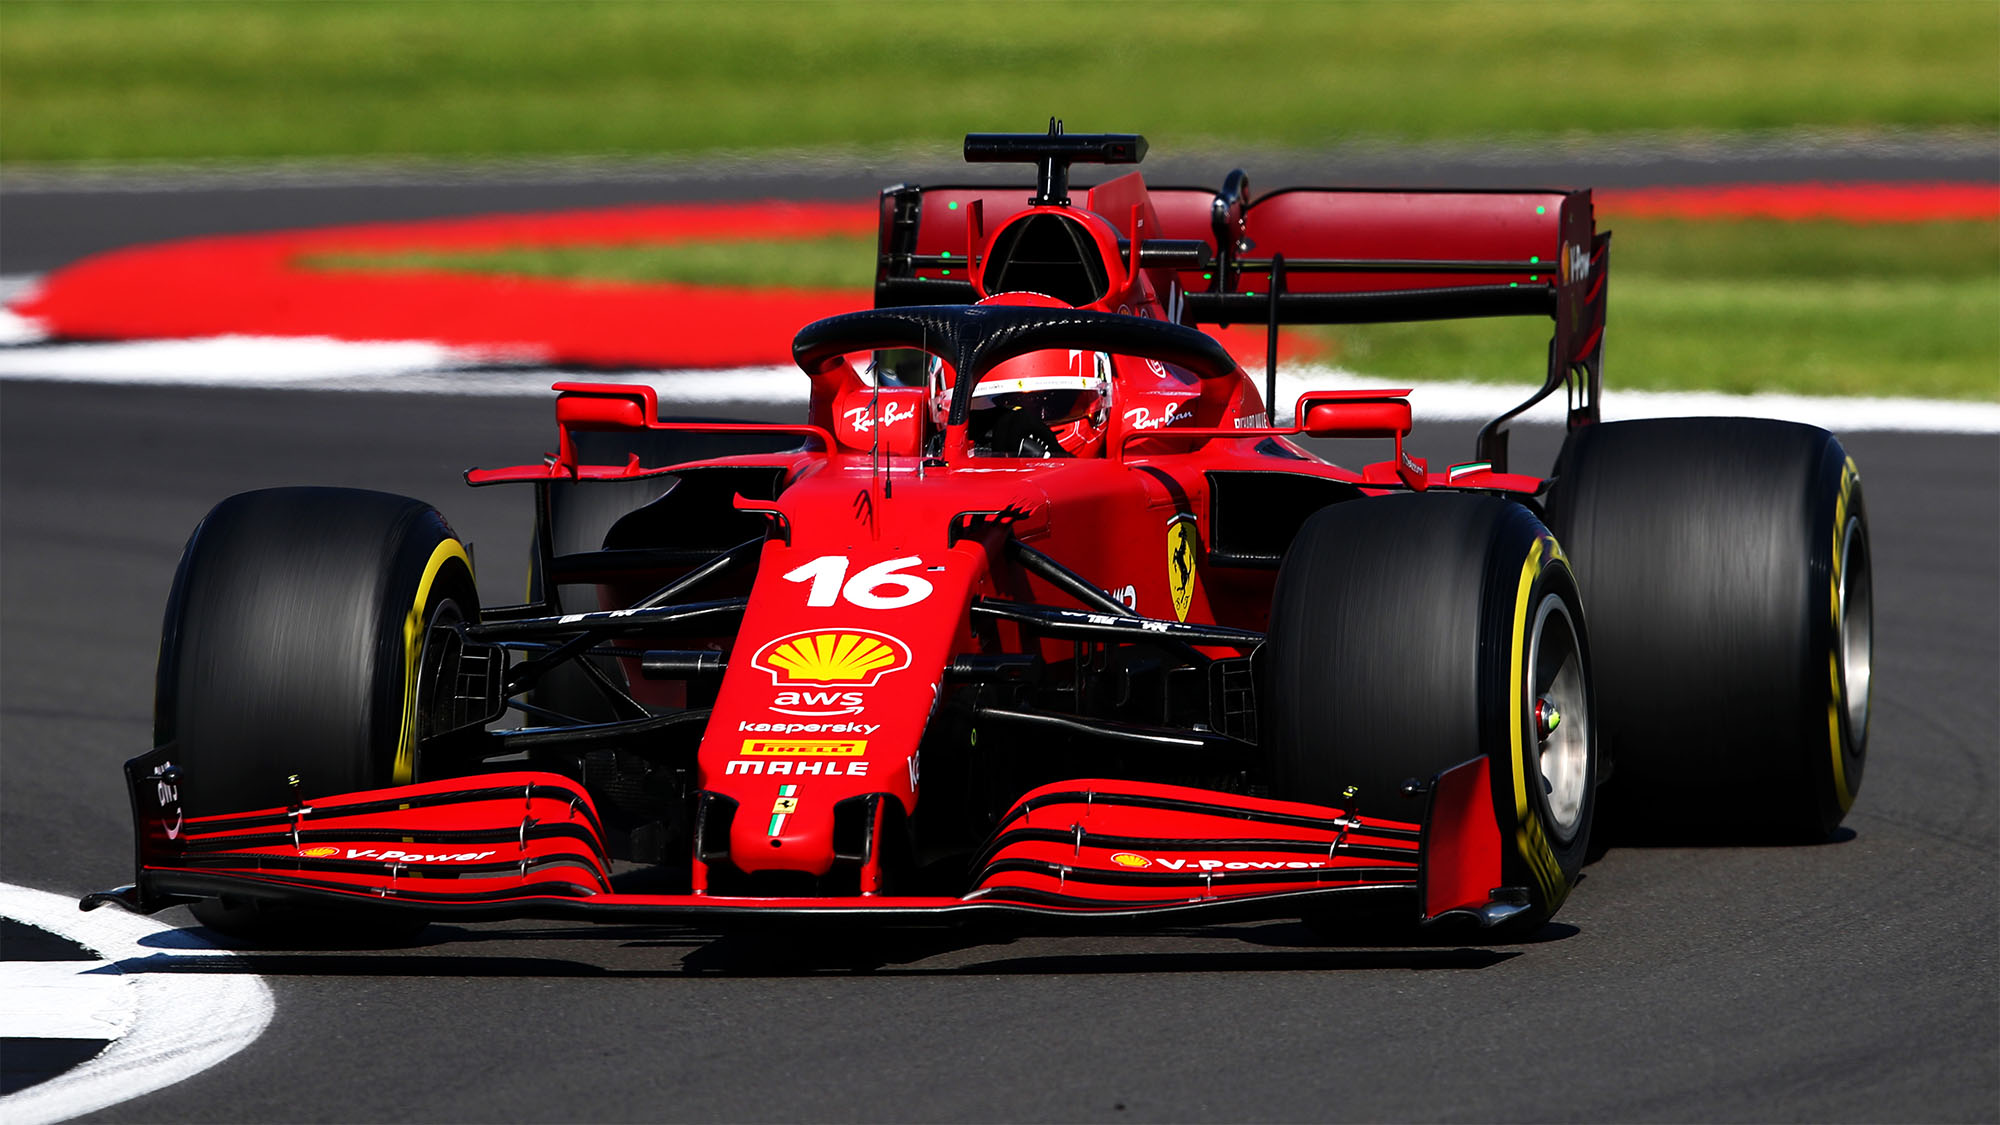 NORTHAMPTON, ENGLAND - JULY 18: Charles Leclerc of Monaco driving the (16) Scuderia Ferrari SF21 during the F1 Grand Prix of Great Britain at Silverstone on July 18, 2021 in Northampton, England. (Photo by Joe Portlock - Formula 1/Formula 1 via Getty Images)